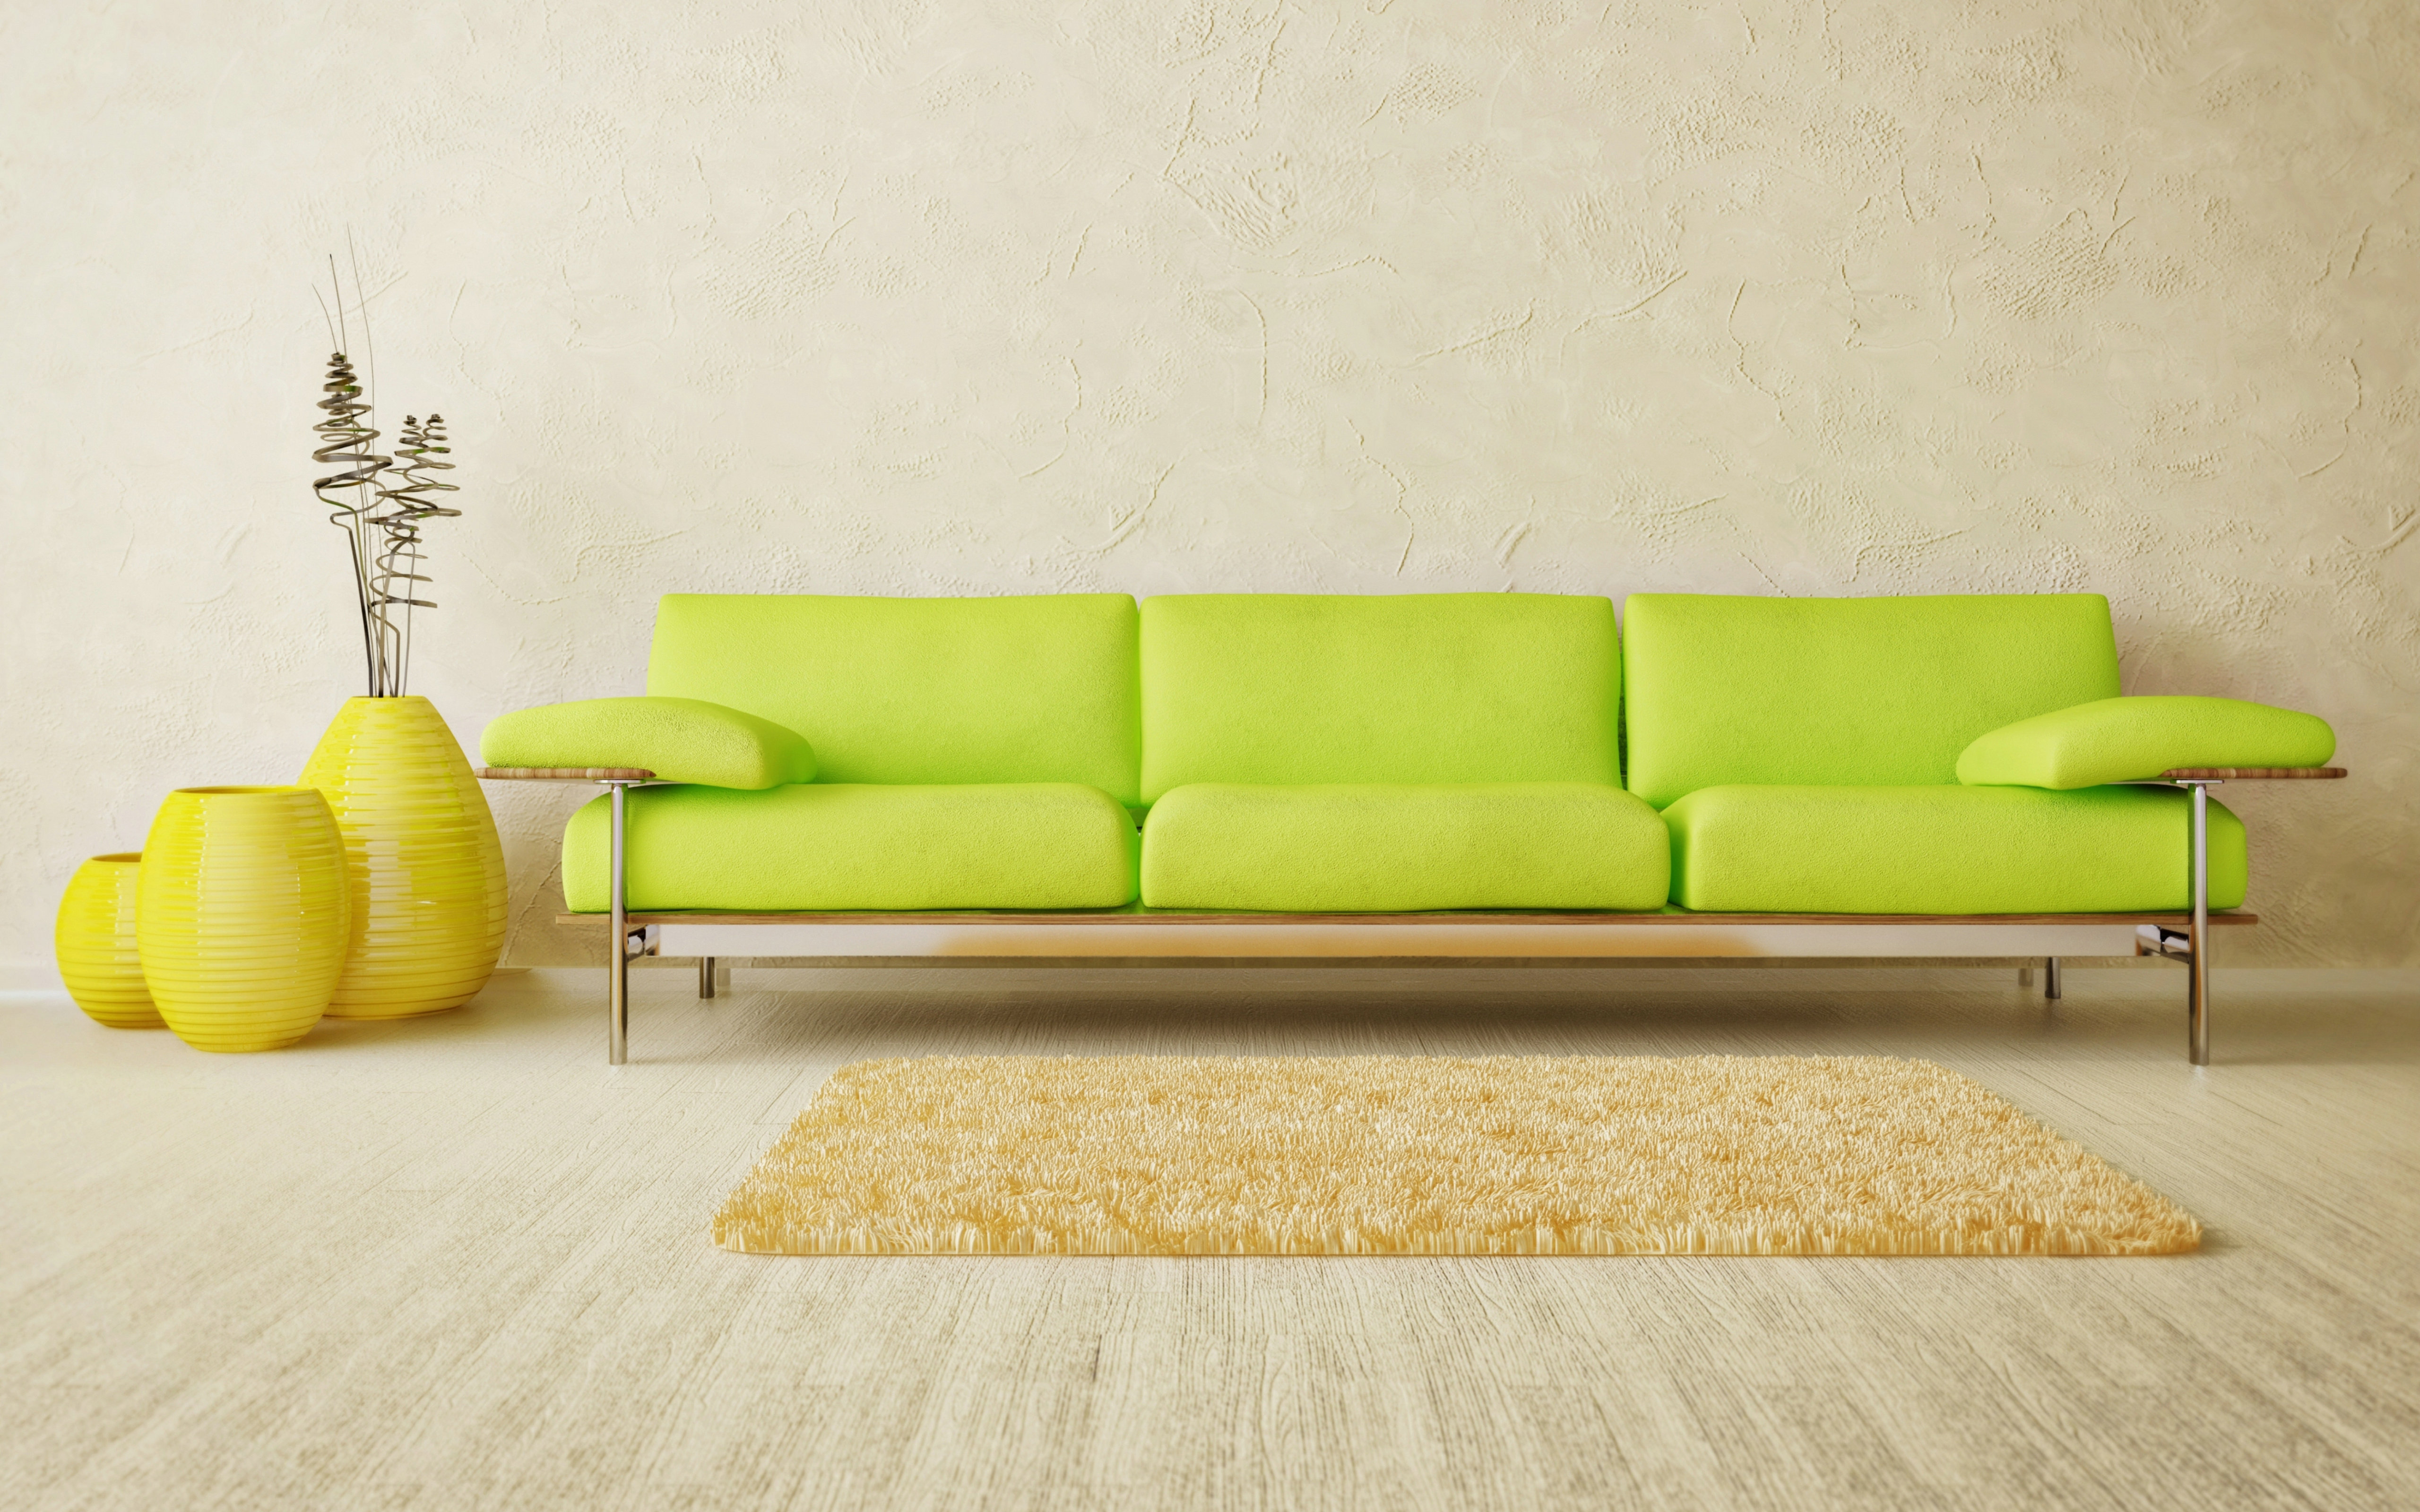 yellow living room wallpaper,furniture,couch,yellow,living room,sofa bed